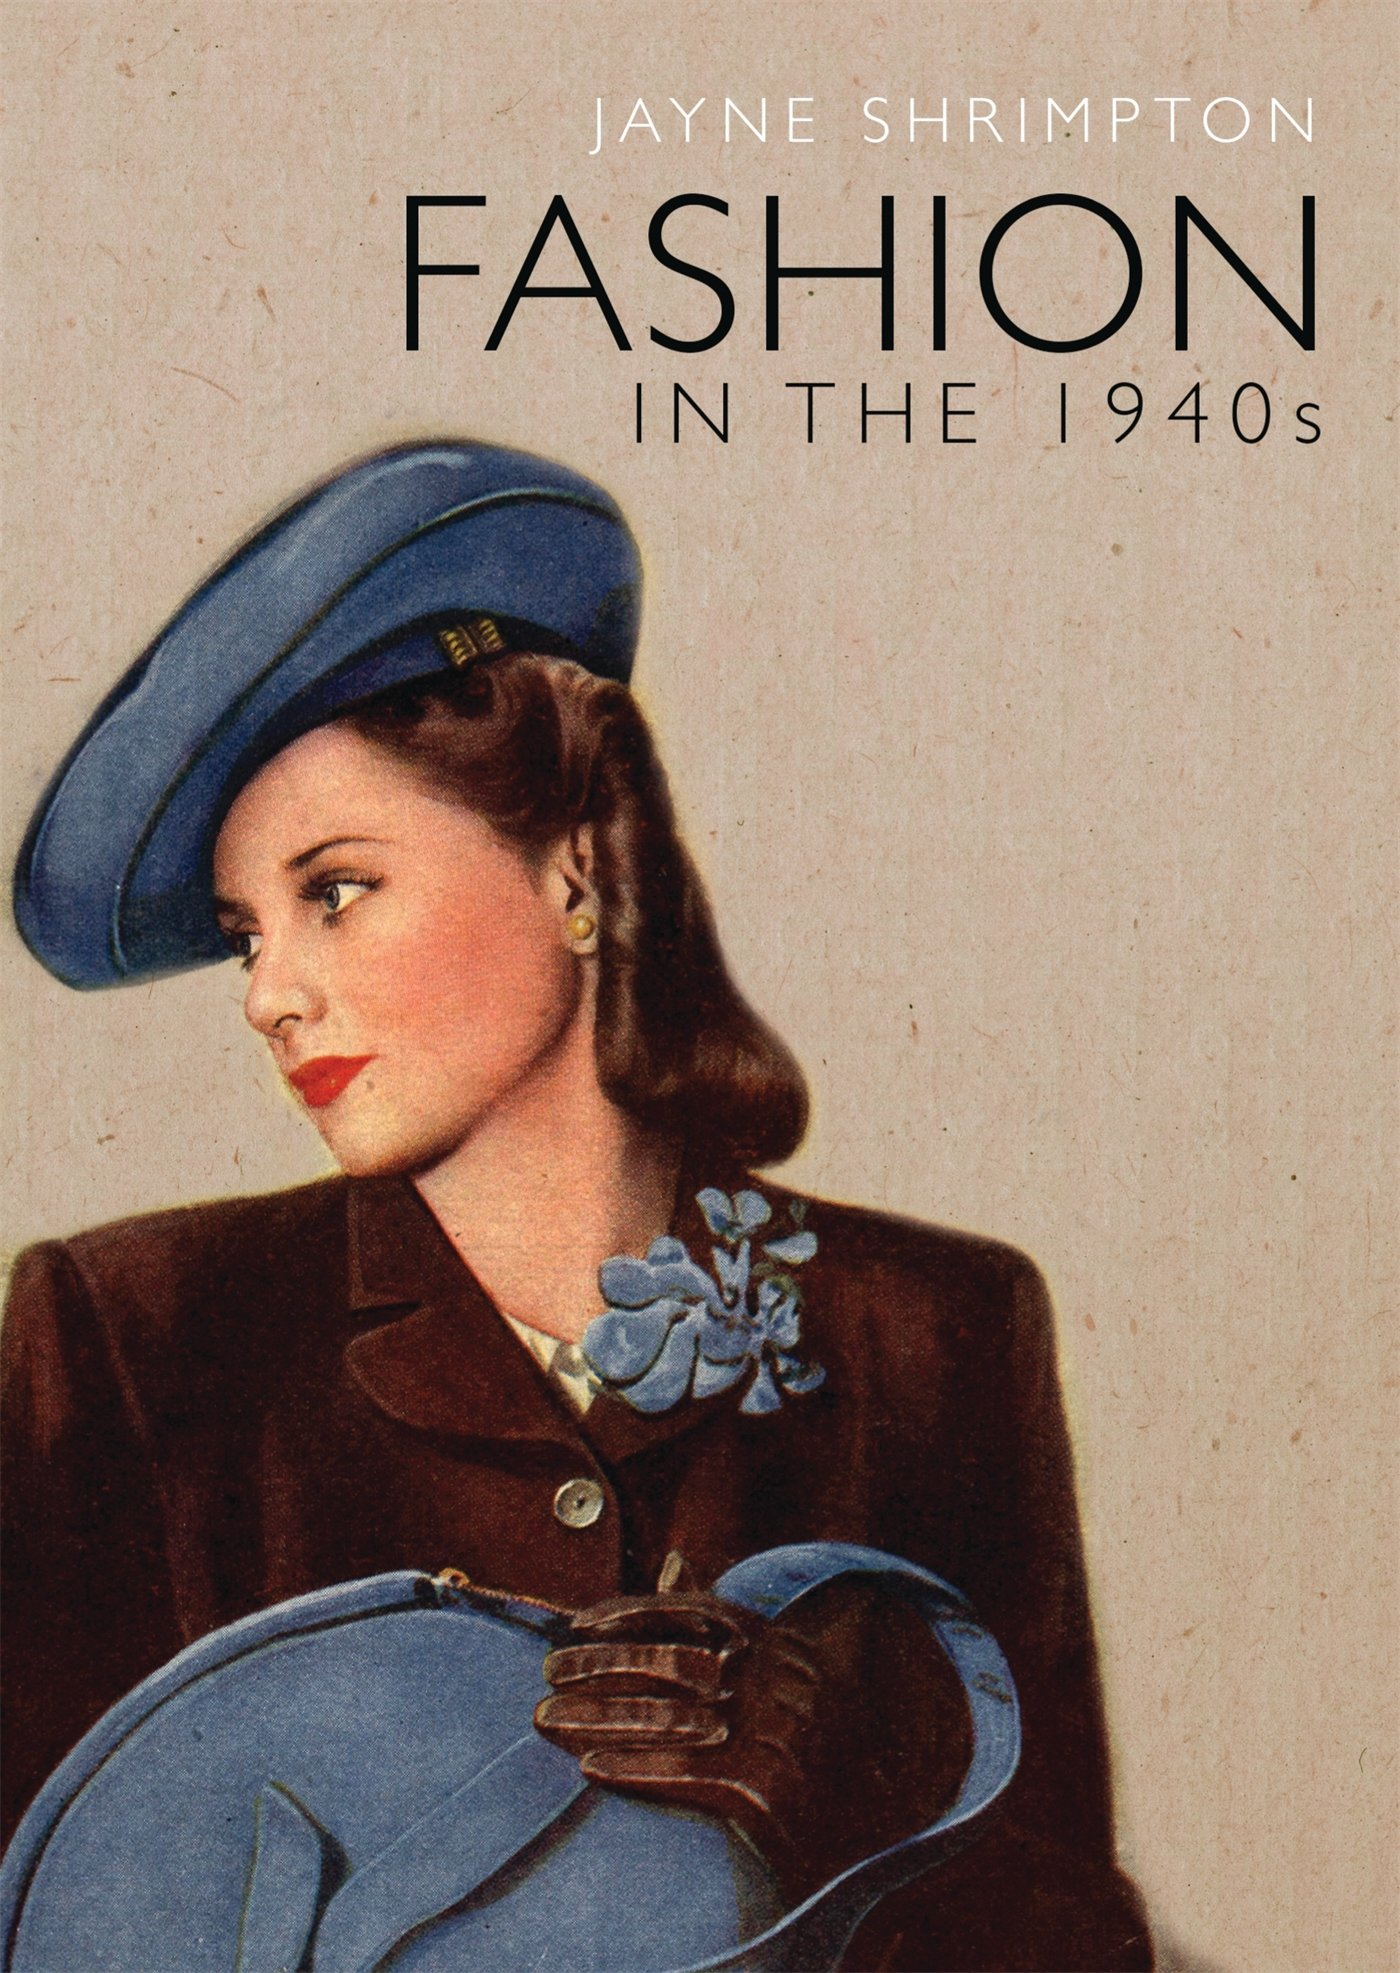 Vintage clothes fashion ads of the 1940s page 22 - Fashion In The 1940s Shire Library